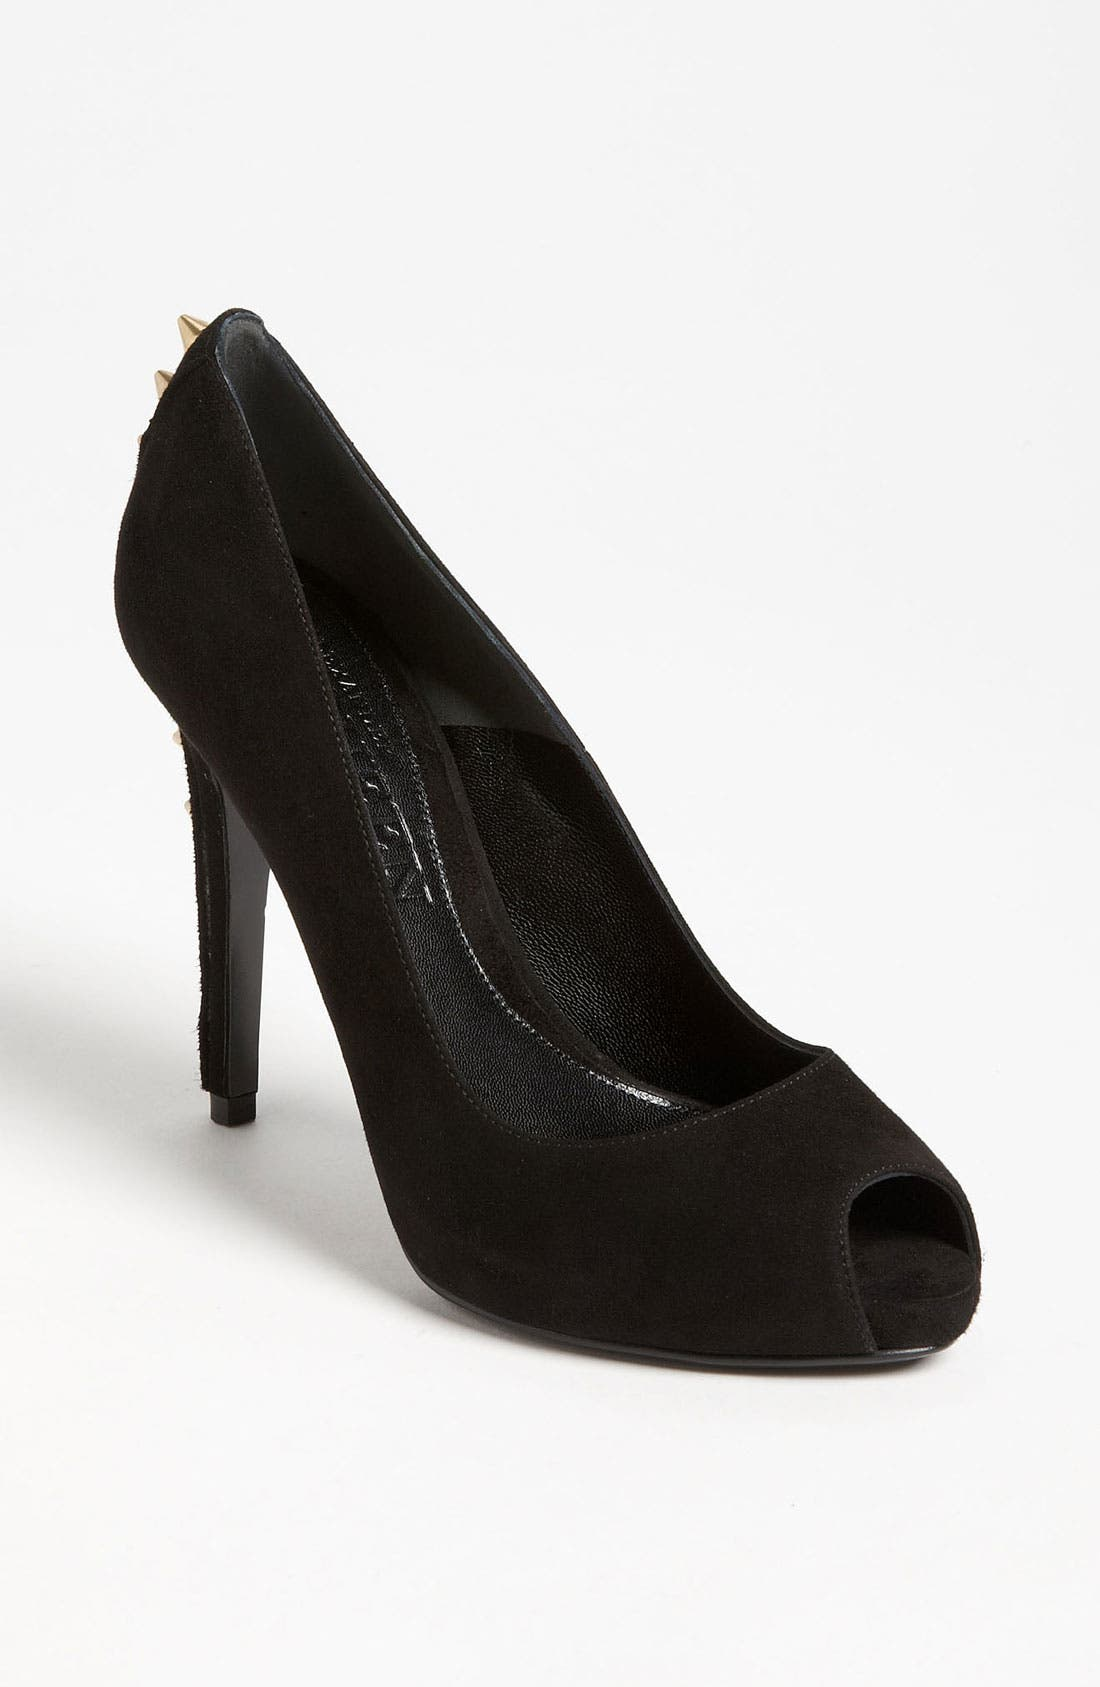 Alternate Image 1 Selected - Alexander McQueen Spike Heel Peep Toe Pump